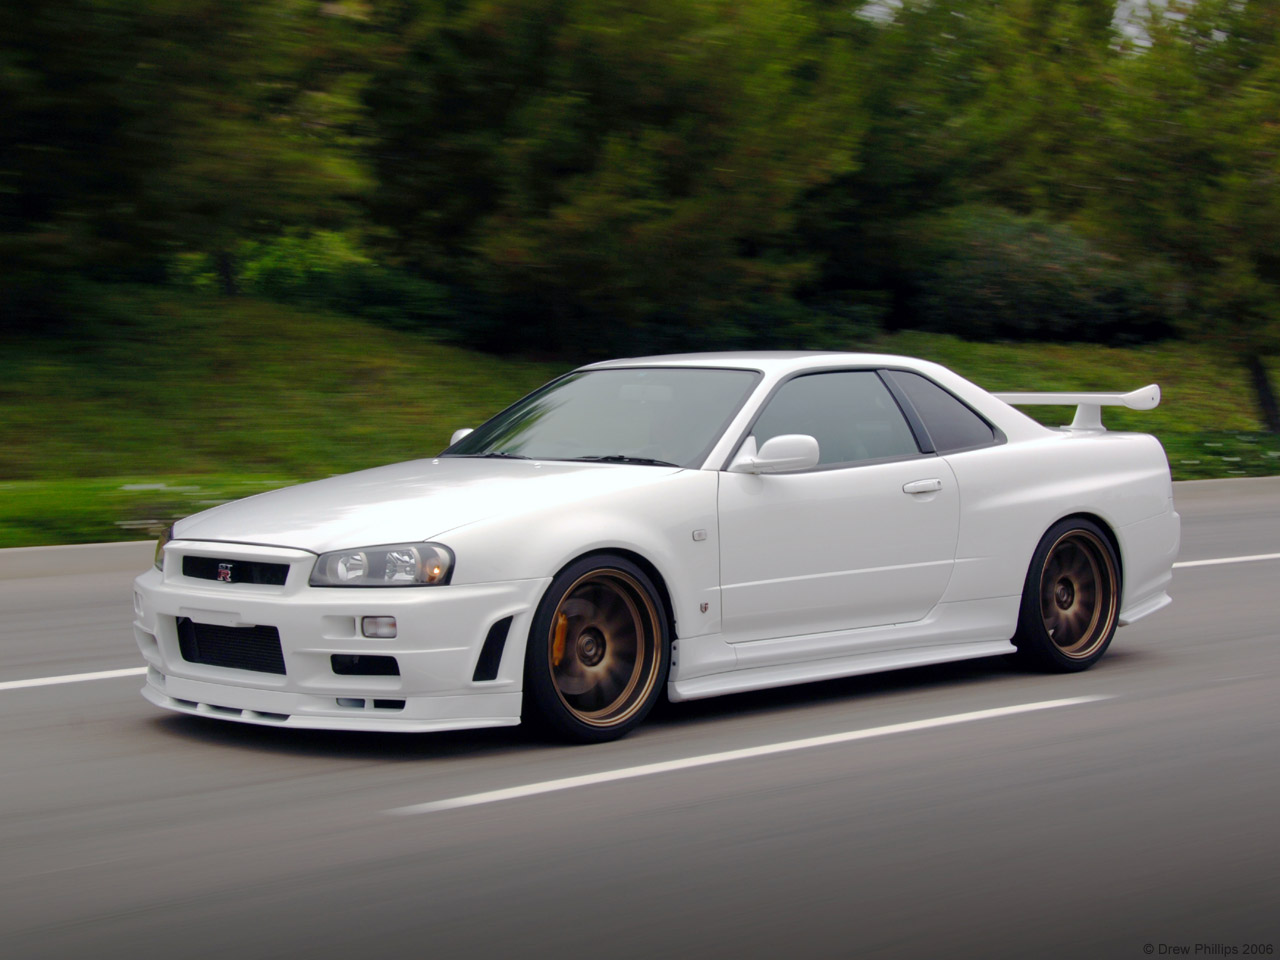 Nissan Skyline R34 HD Wallpaper